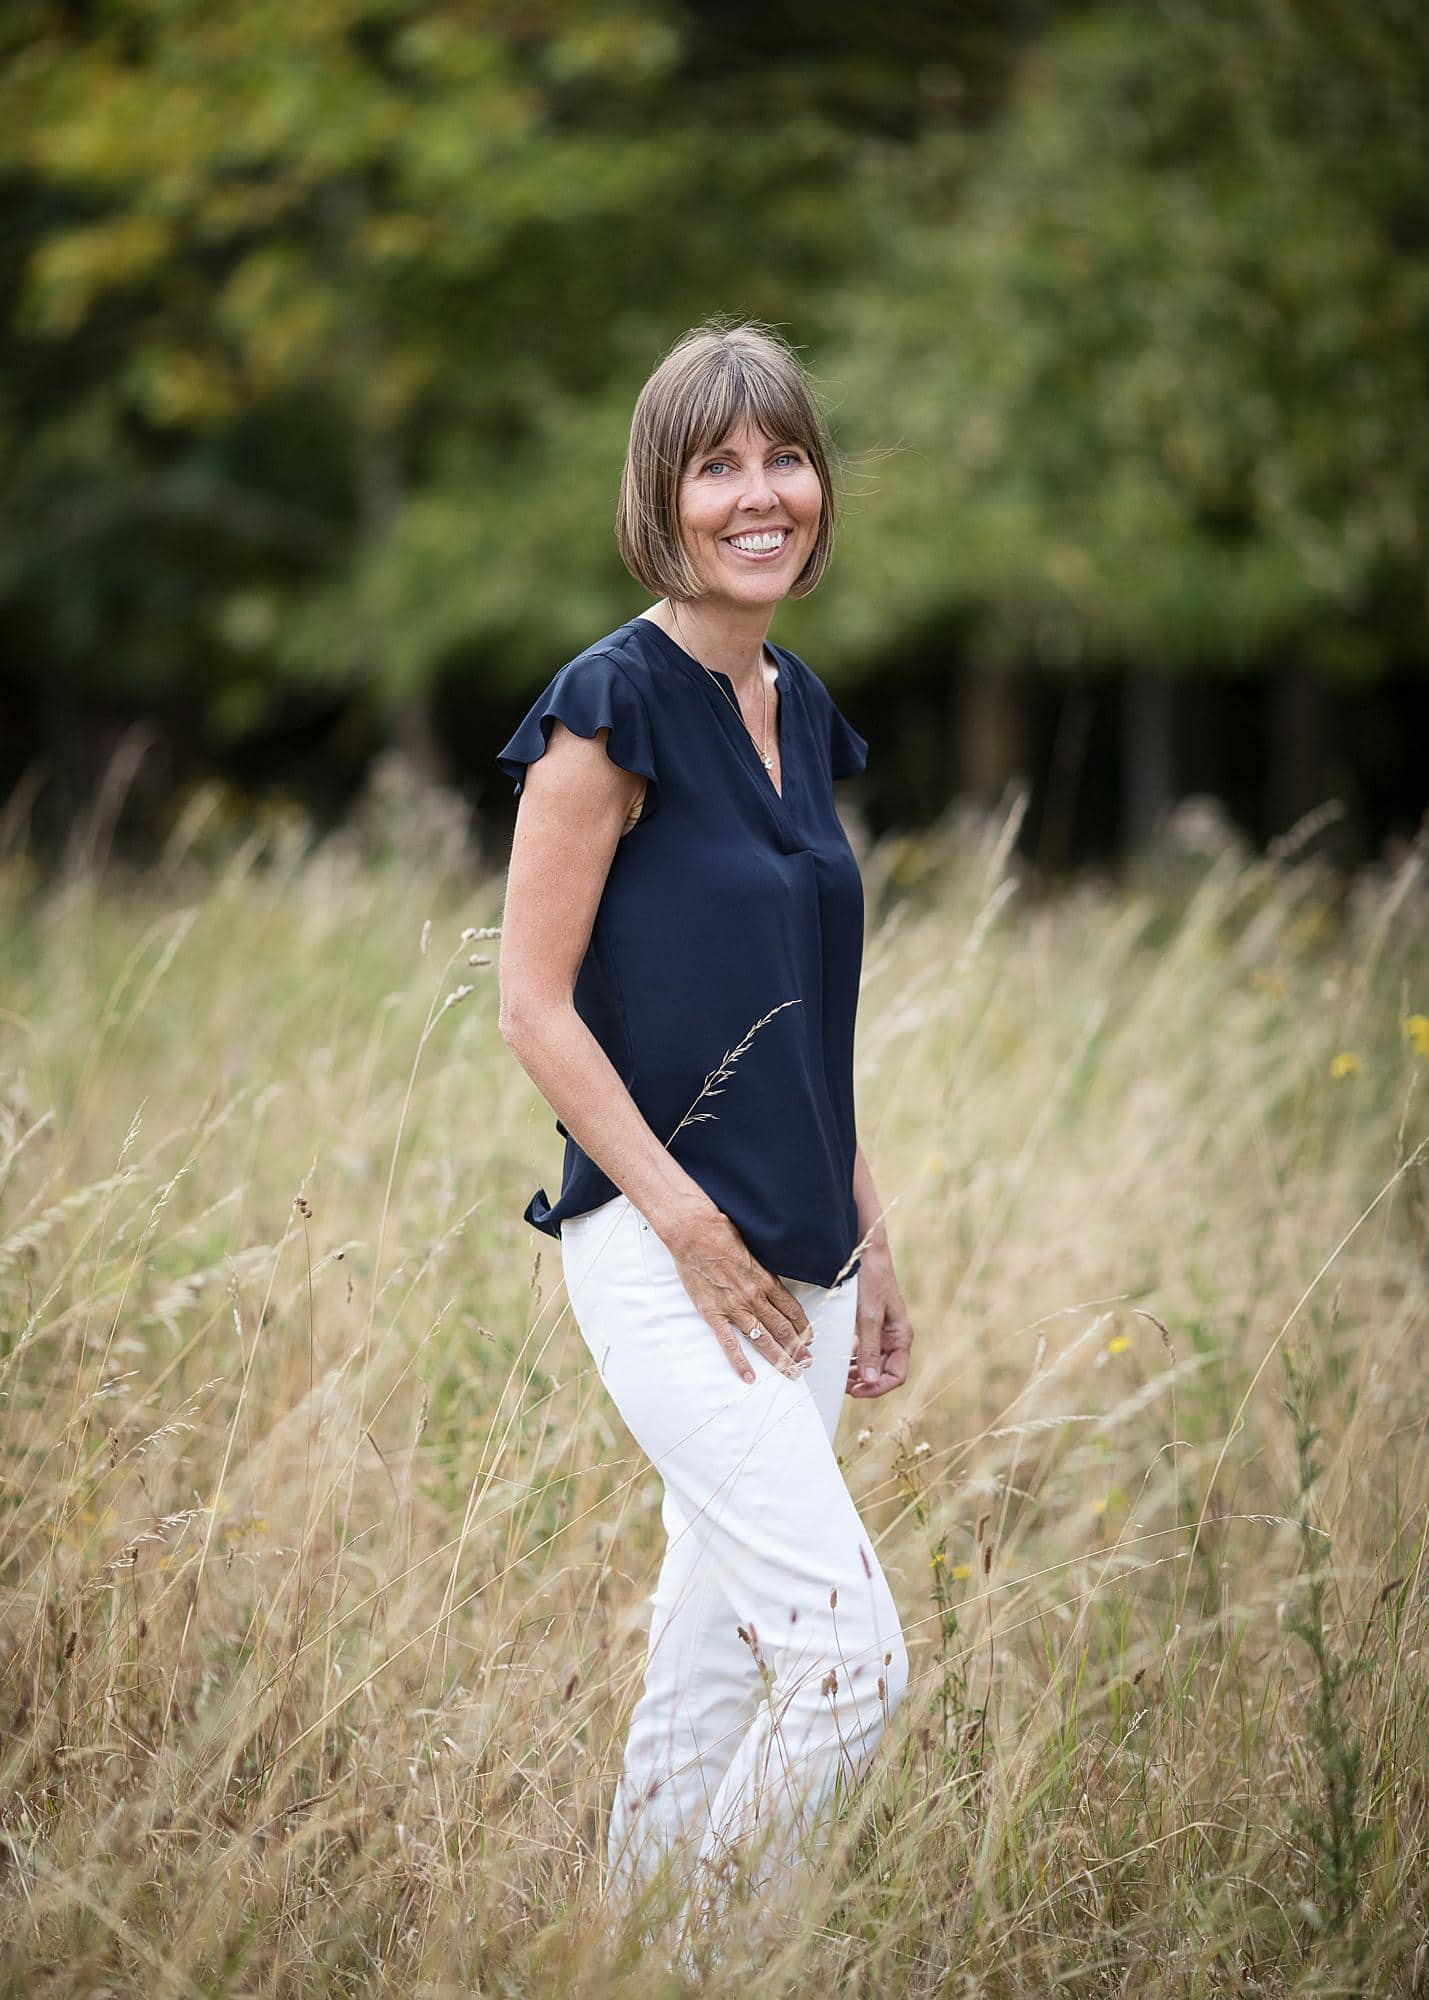 Woman smiling and standing in long grass in a field in suffolk for a Personal Branding photoshoot